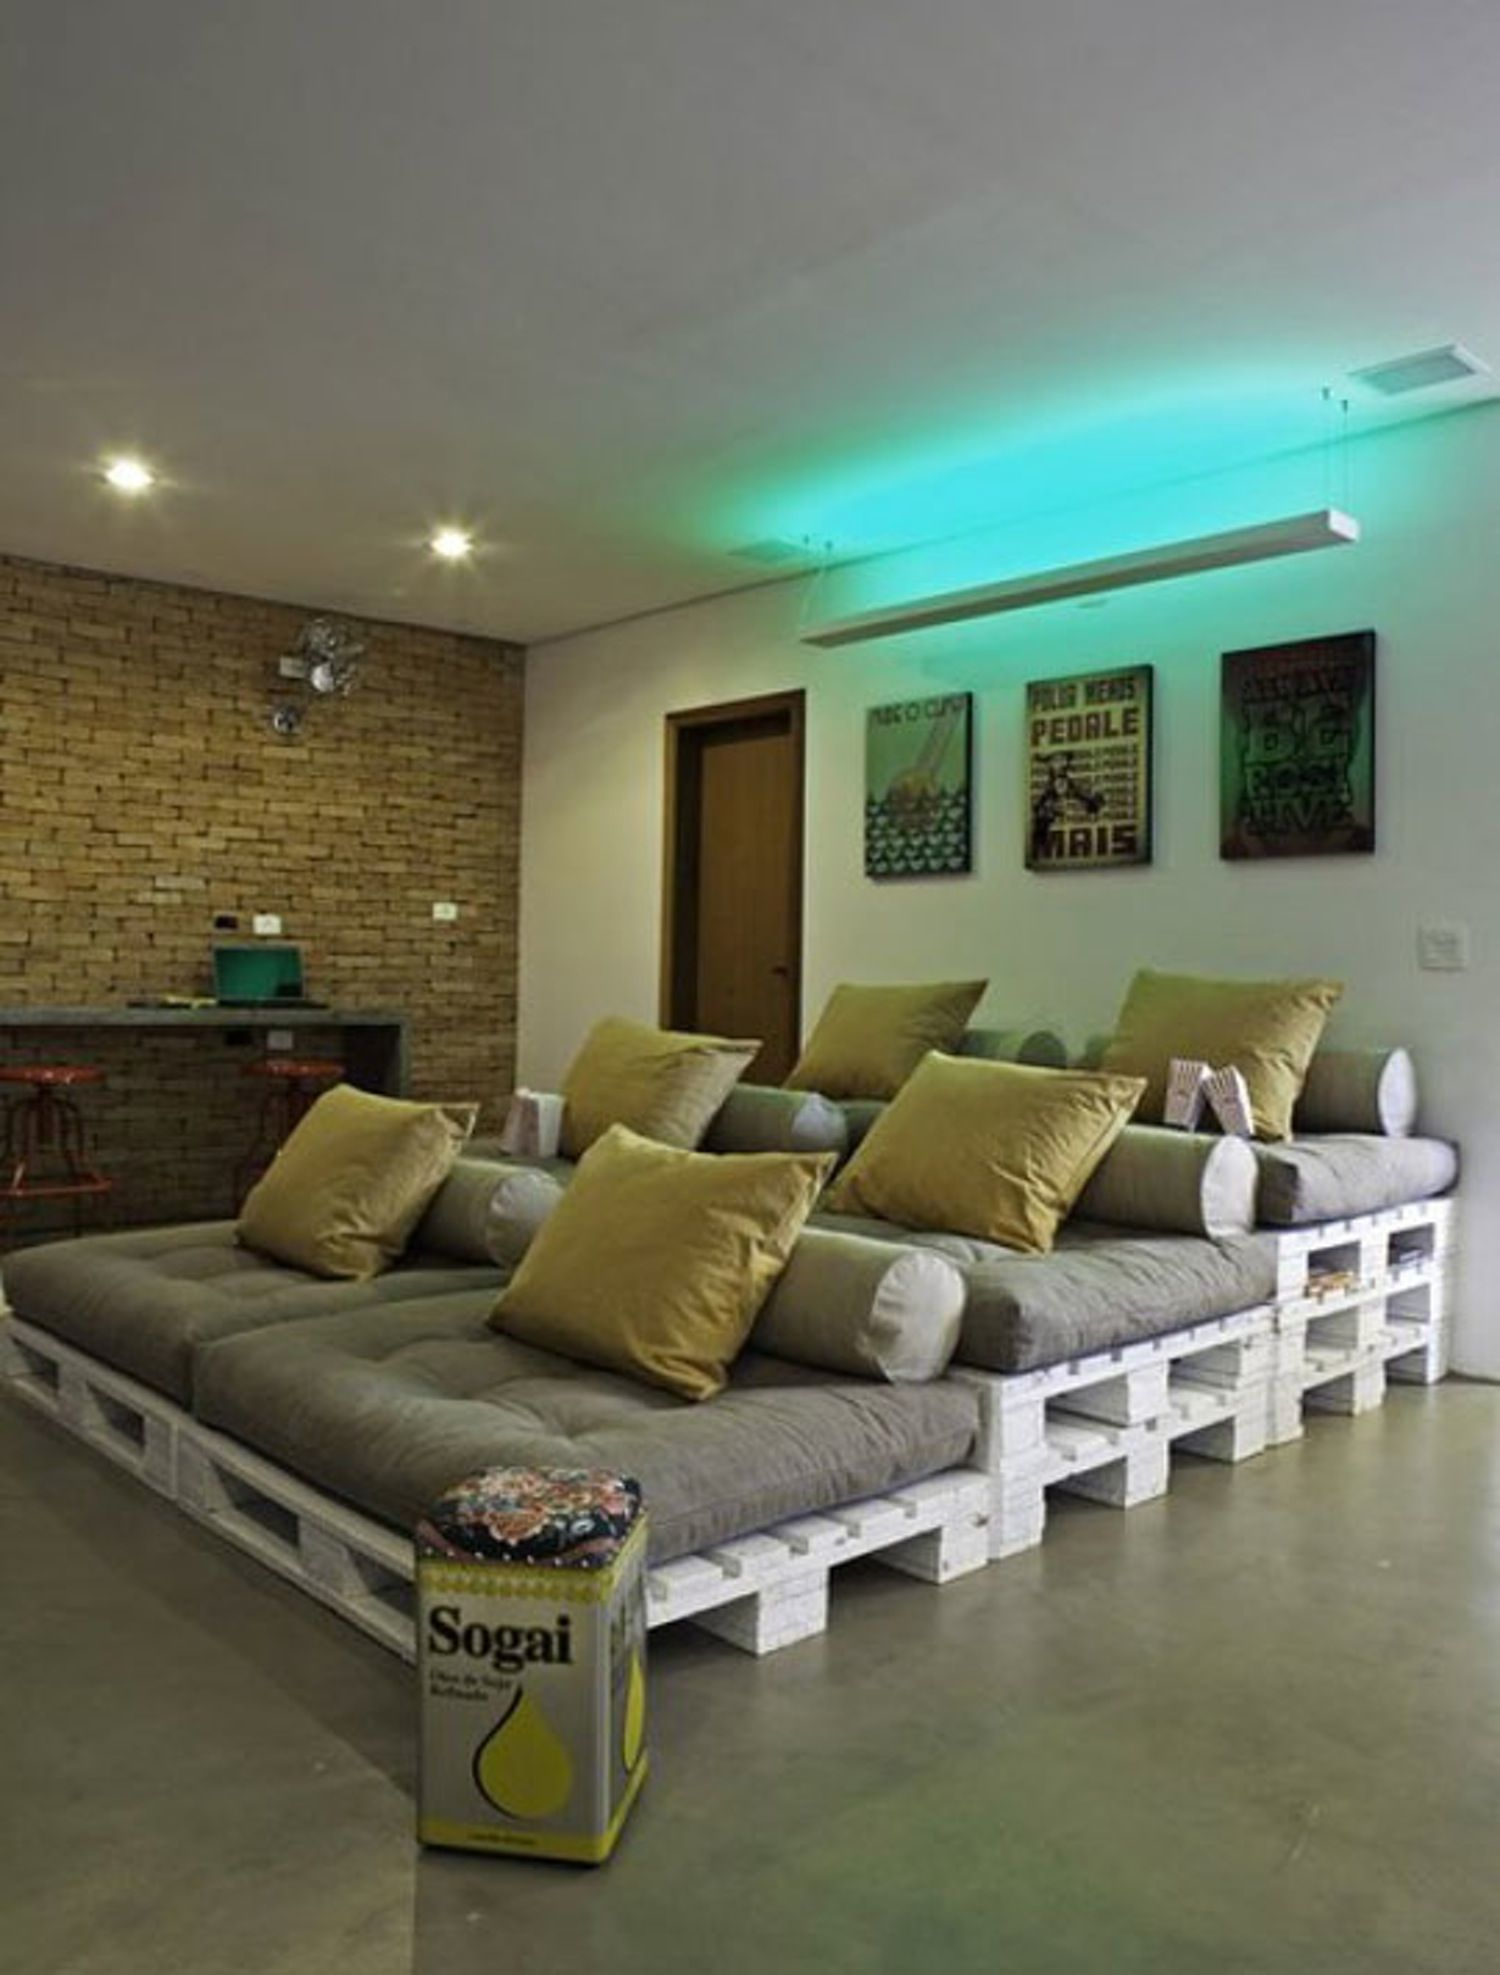 Home-entertainment-design-ideen diy stadium style home theater seating u final frame  theater seats